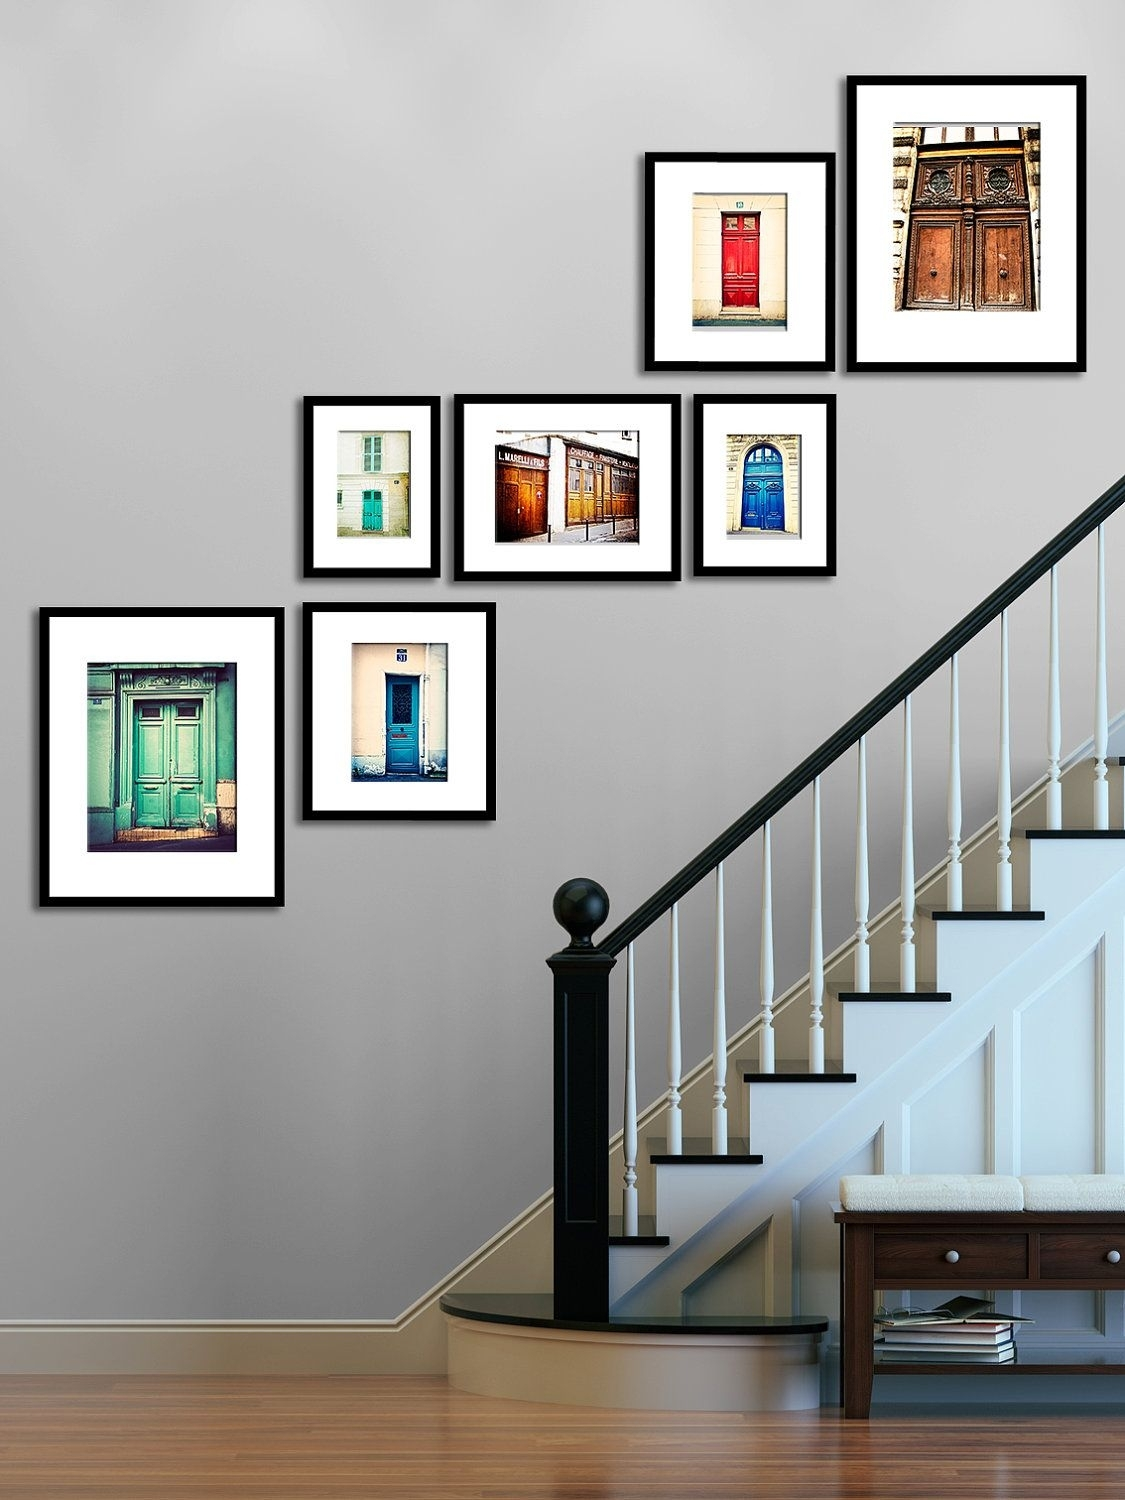 Paris Photography – Print Set, Parisian Door Wall Art, Wall Decor Inside Most Popular Etsy Wall Accents (Gallery 3 of 15)